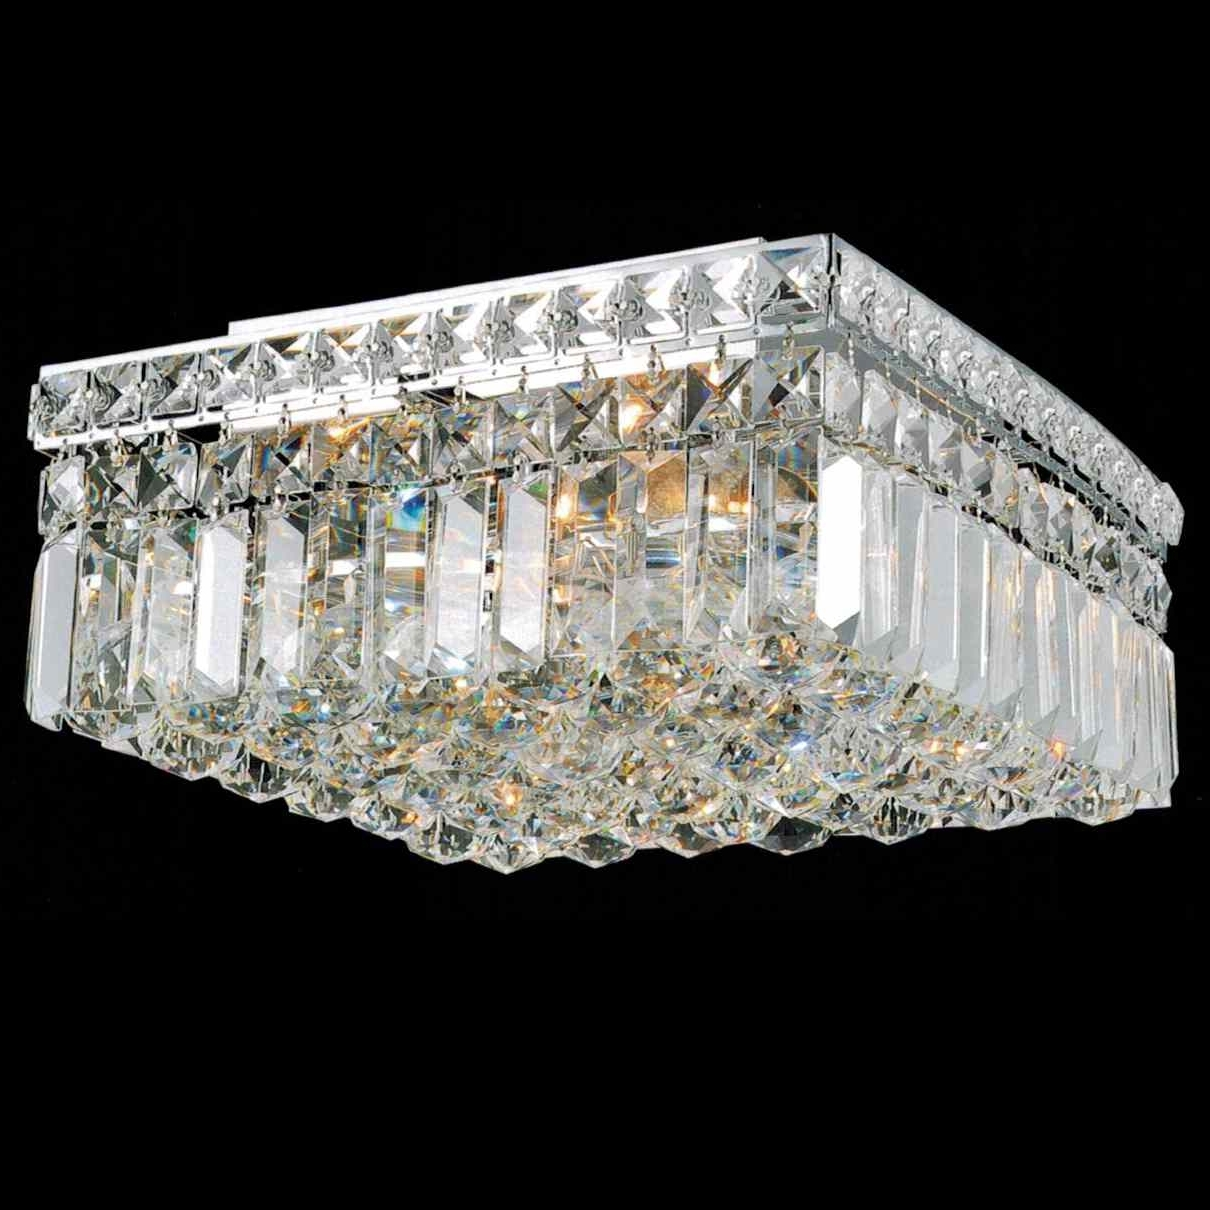 "4 Light Chrome Crystal Chandeliers with Latest Brizzo Lighting Stores. 12"" Bossolo Transitional Crystal Square"